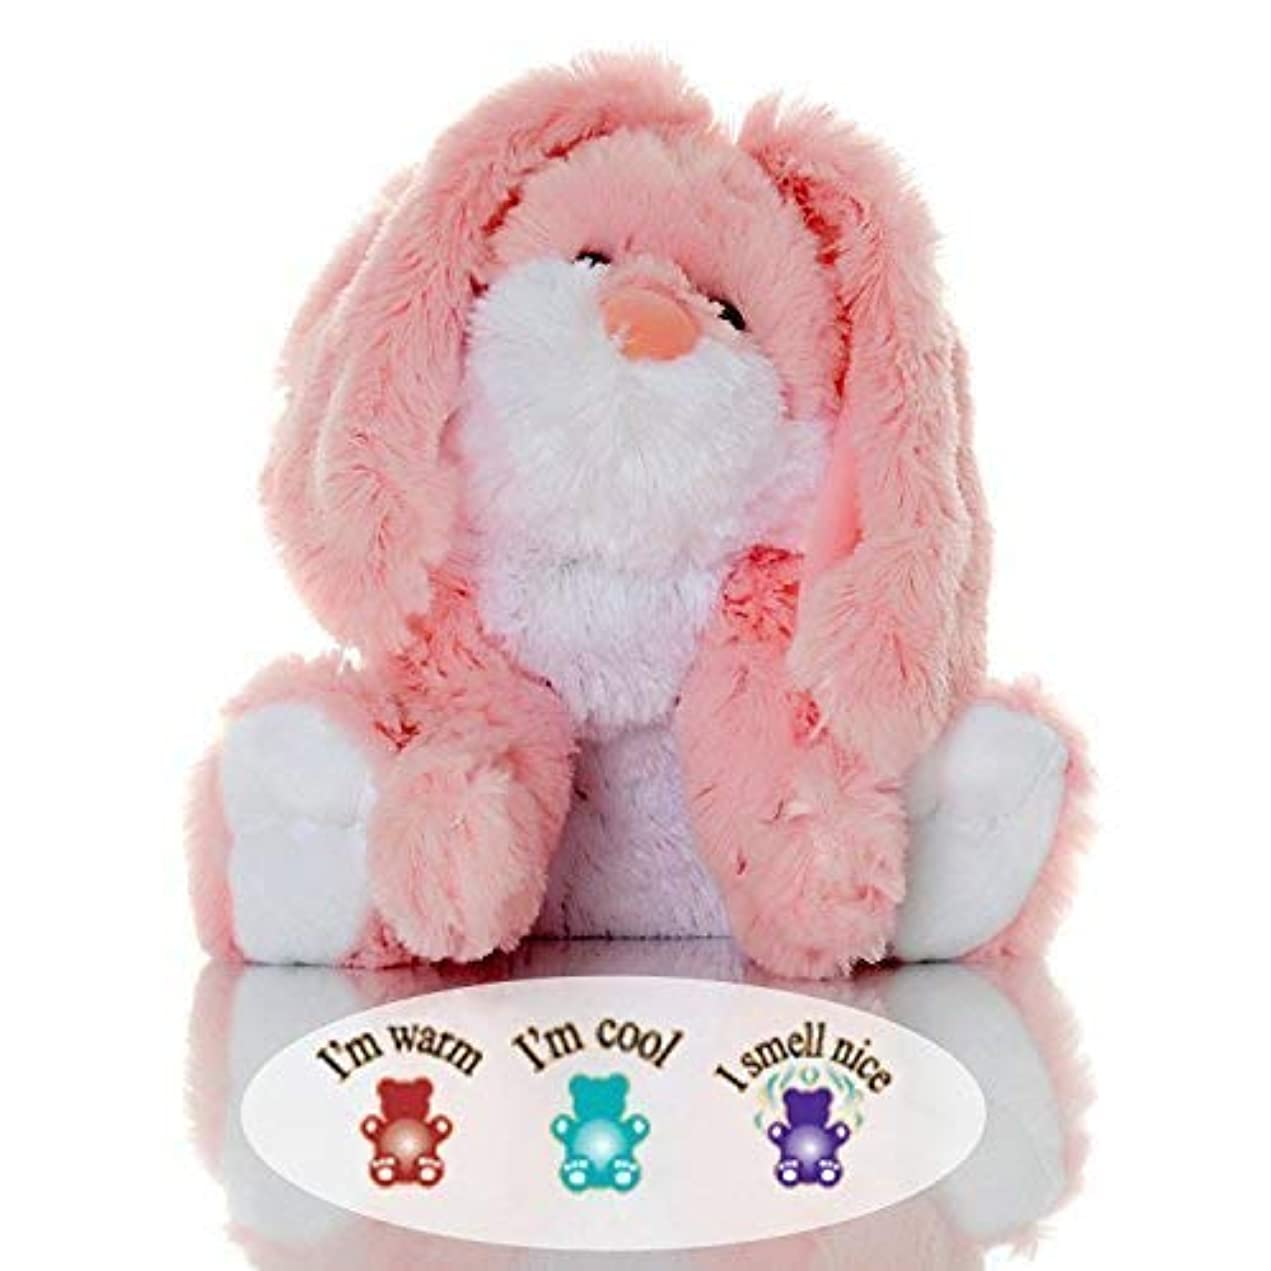 Sootheze Rosey Bunny Rabbit - Microwavable Stuffed Animal - Weighted Lavender Scented Aromatherapy - Hot and Cold...